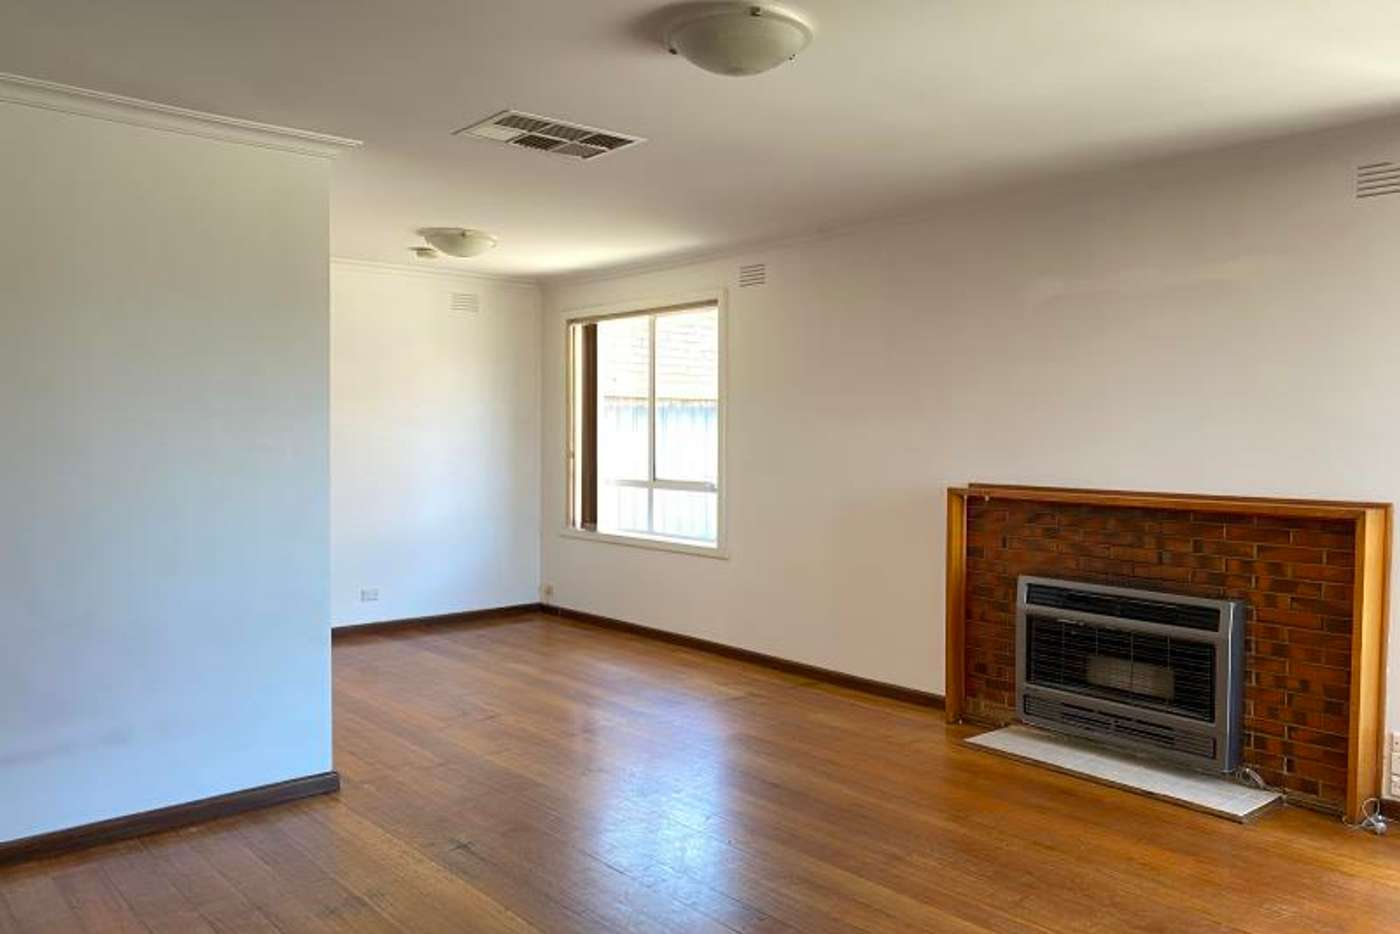 Fifth view of Homely house listing, 8a Hurley Street, Reservoir VIC 3073